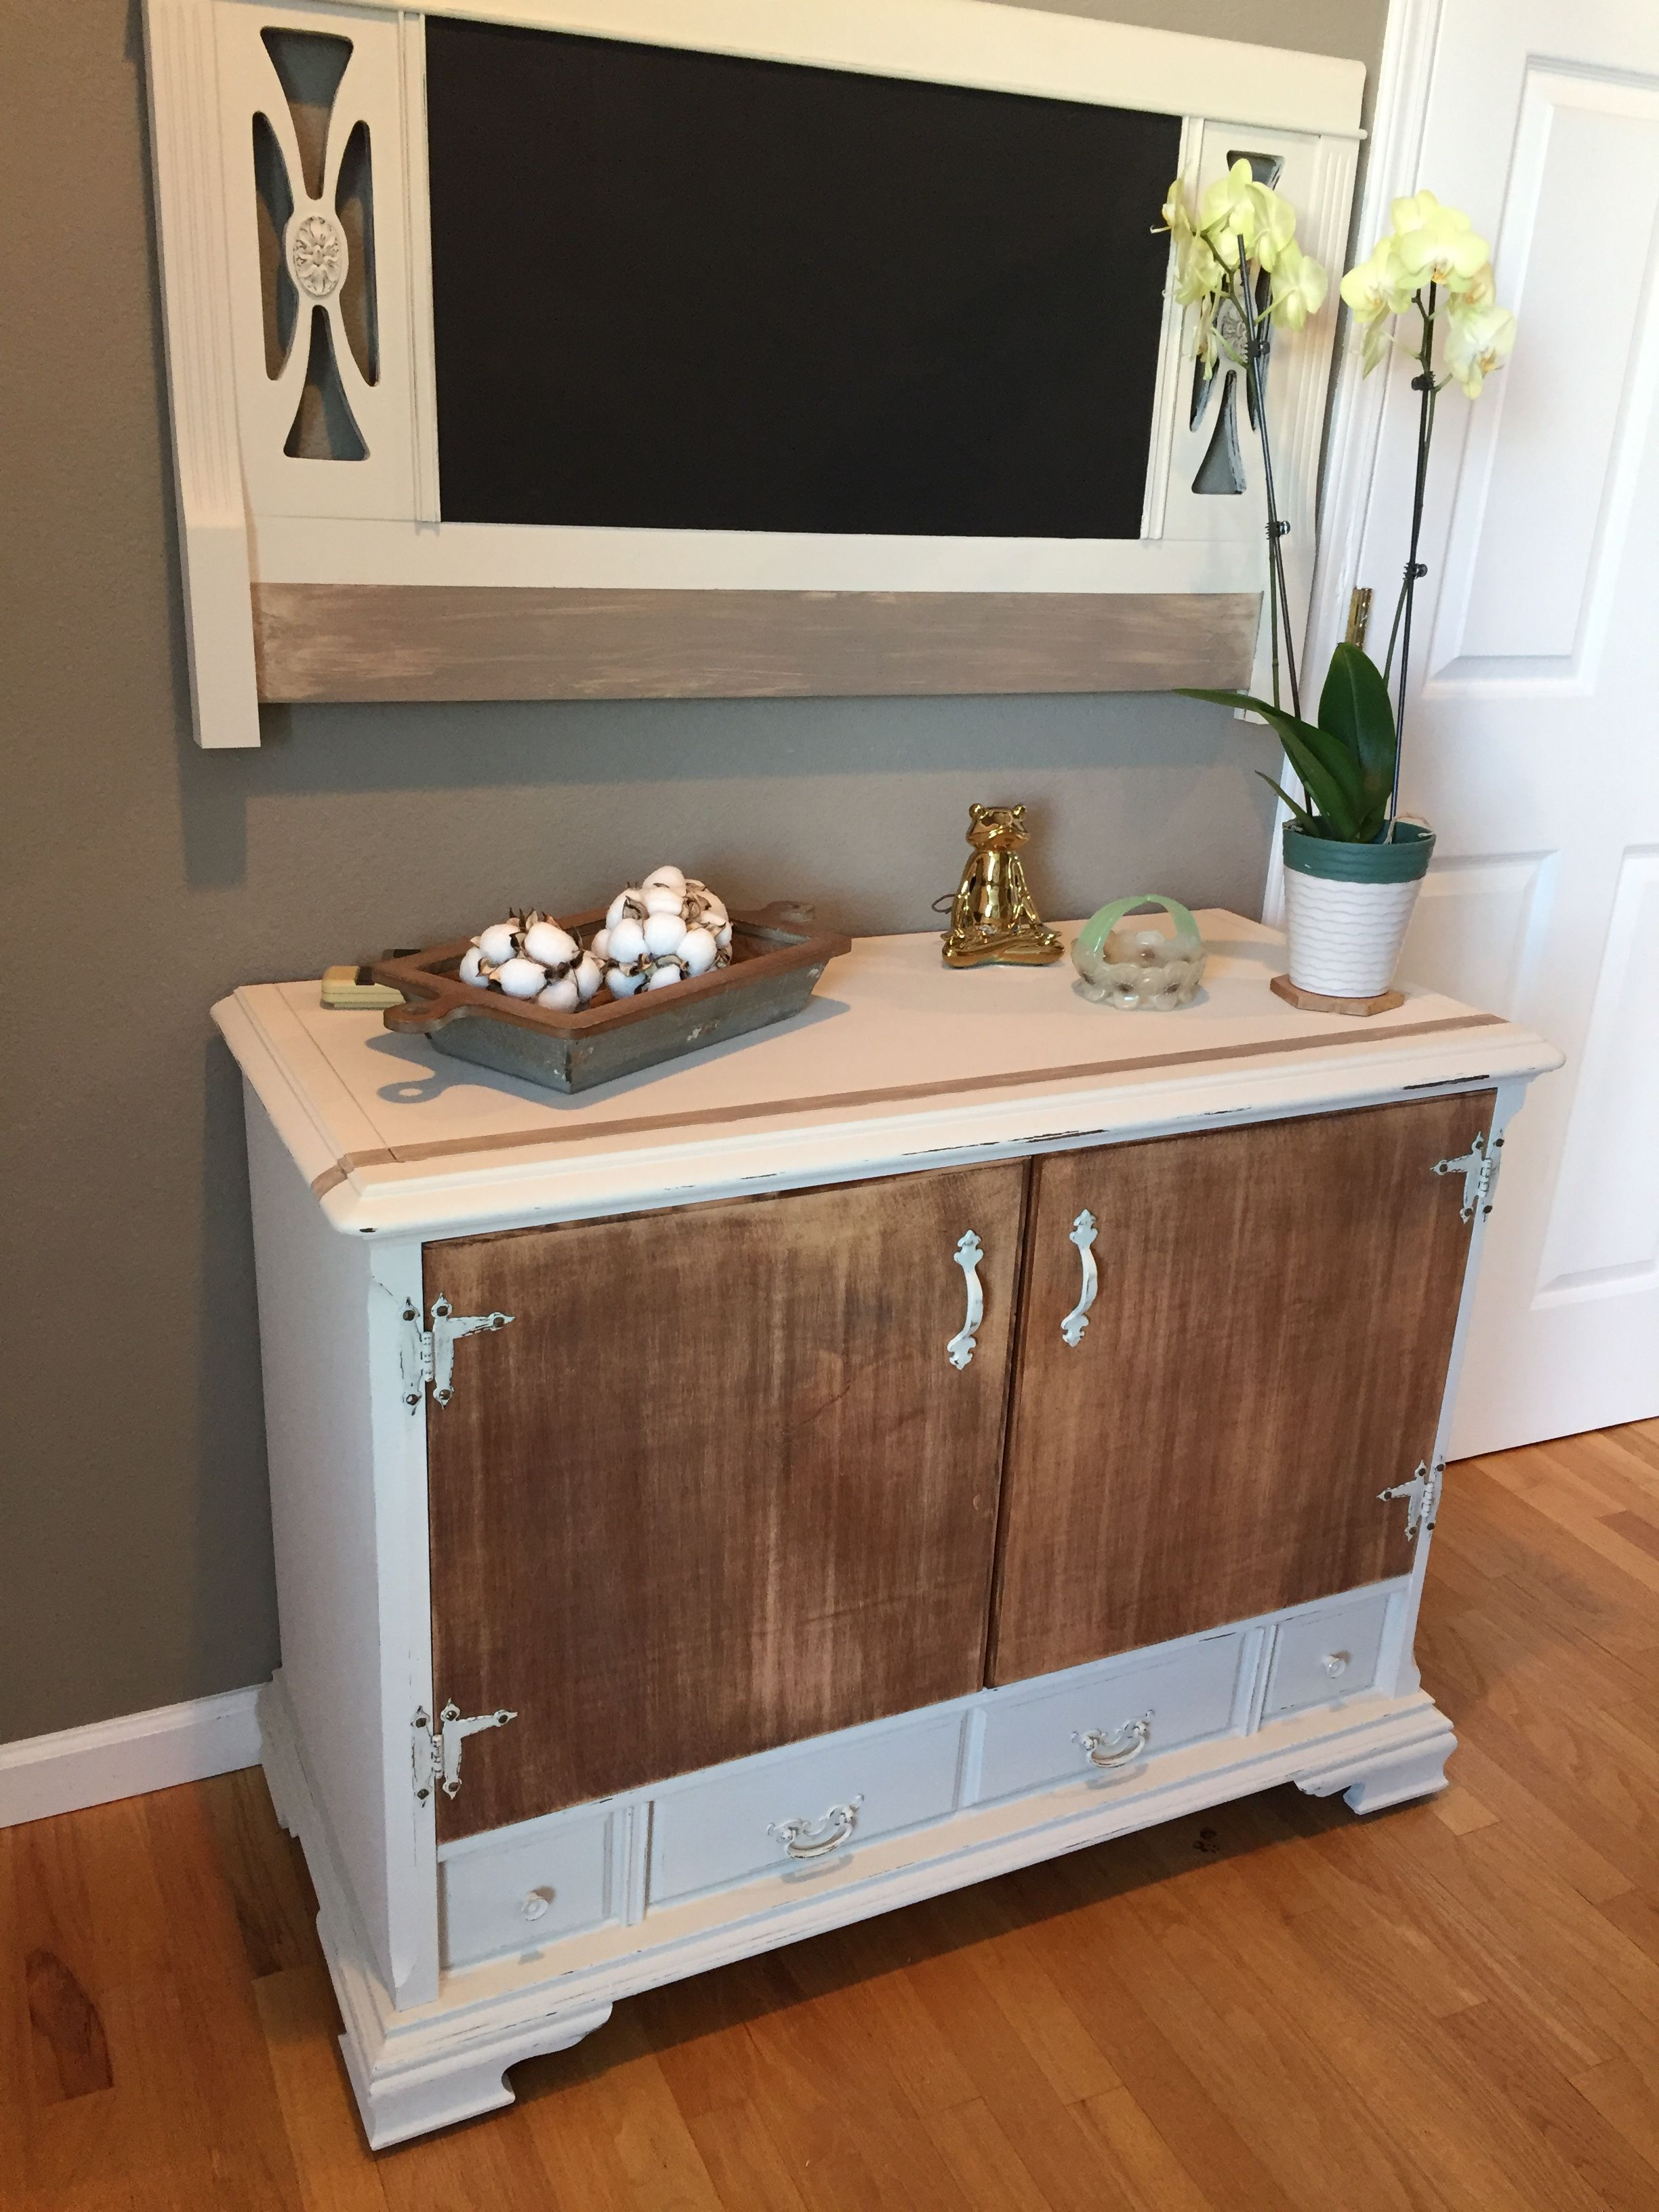 Rustic Decorold Console Tv Cabinet Now Has Two Shelves Inside